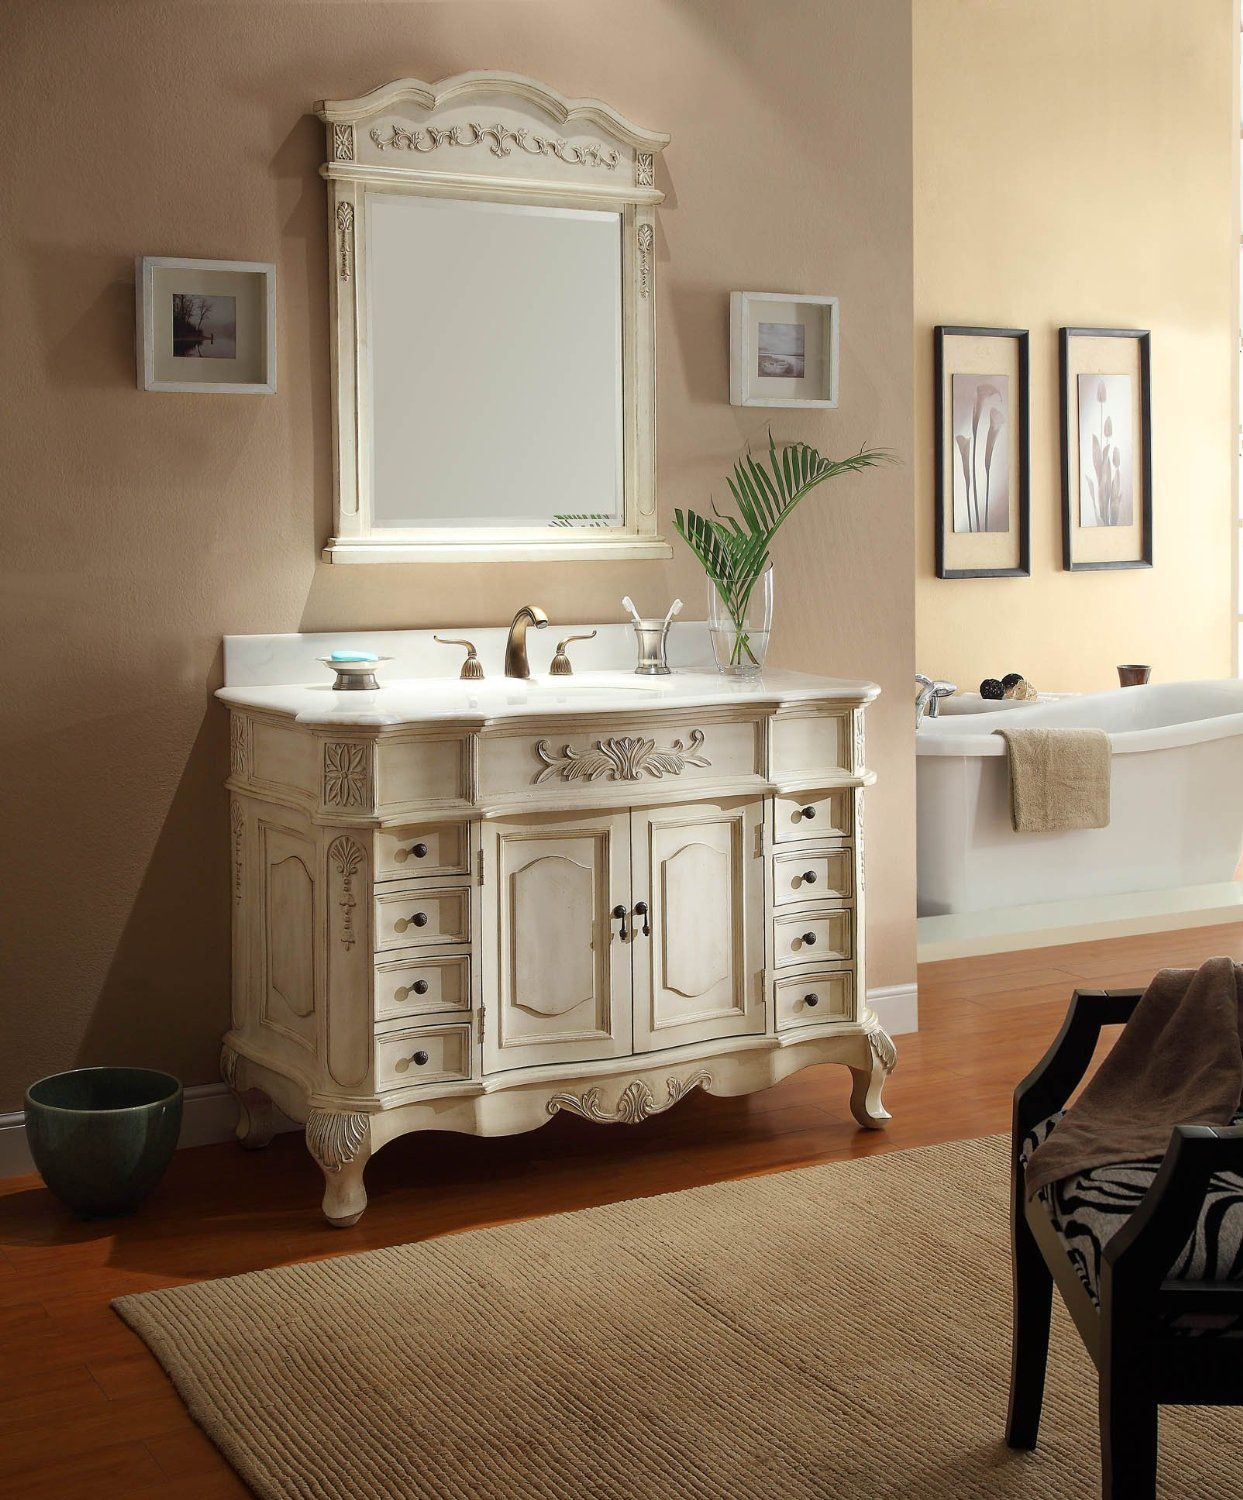 French provincial bathroom vanities online le bain French provincial bathroom vanities